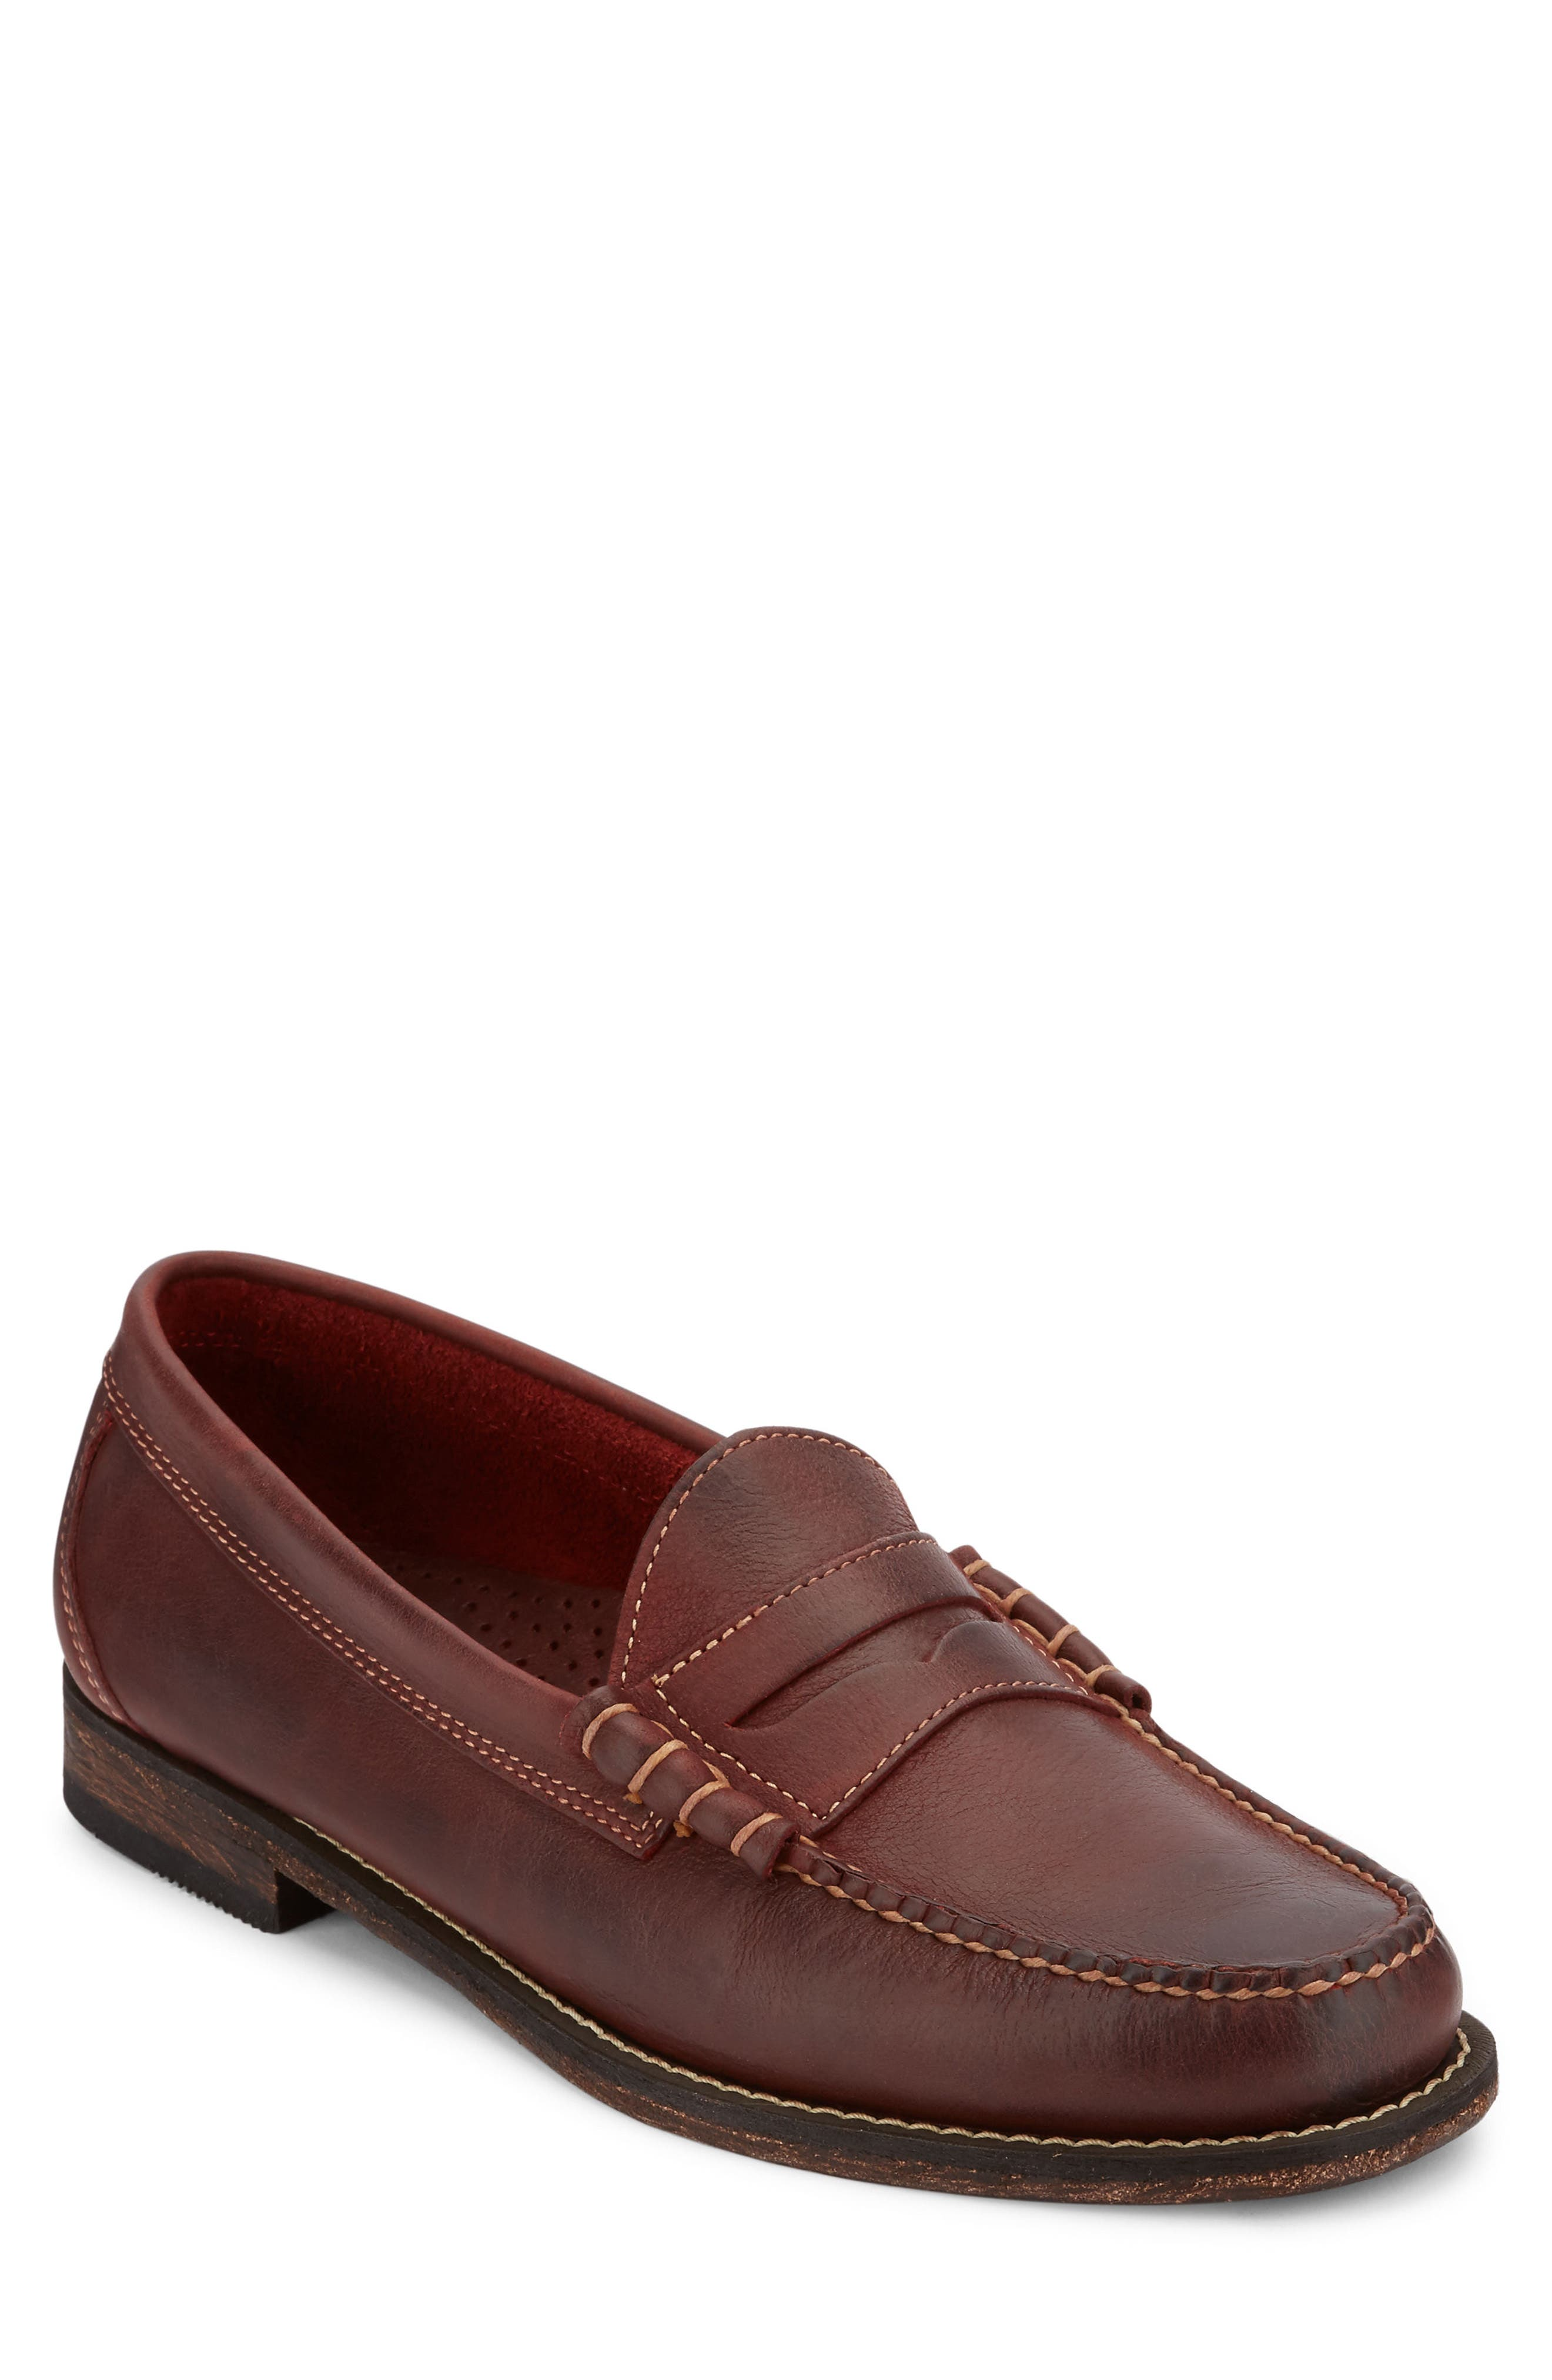 Hayden Penny Loafer,                             Main thumbnail 4, color,